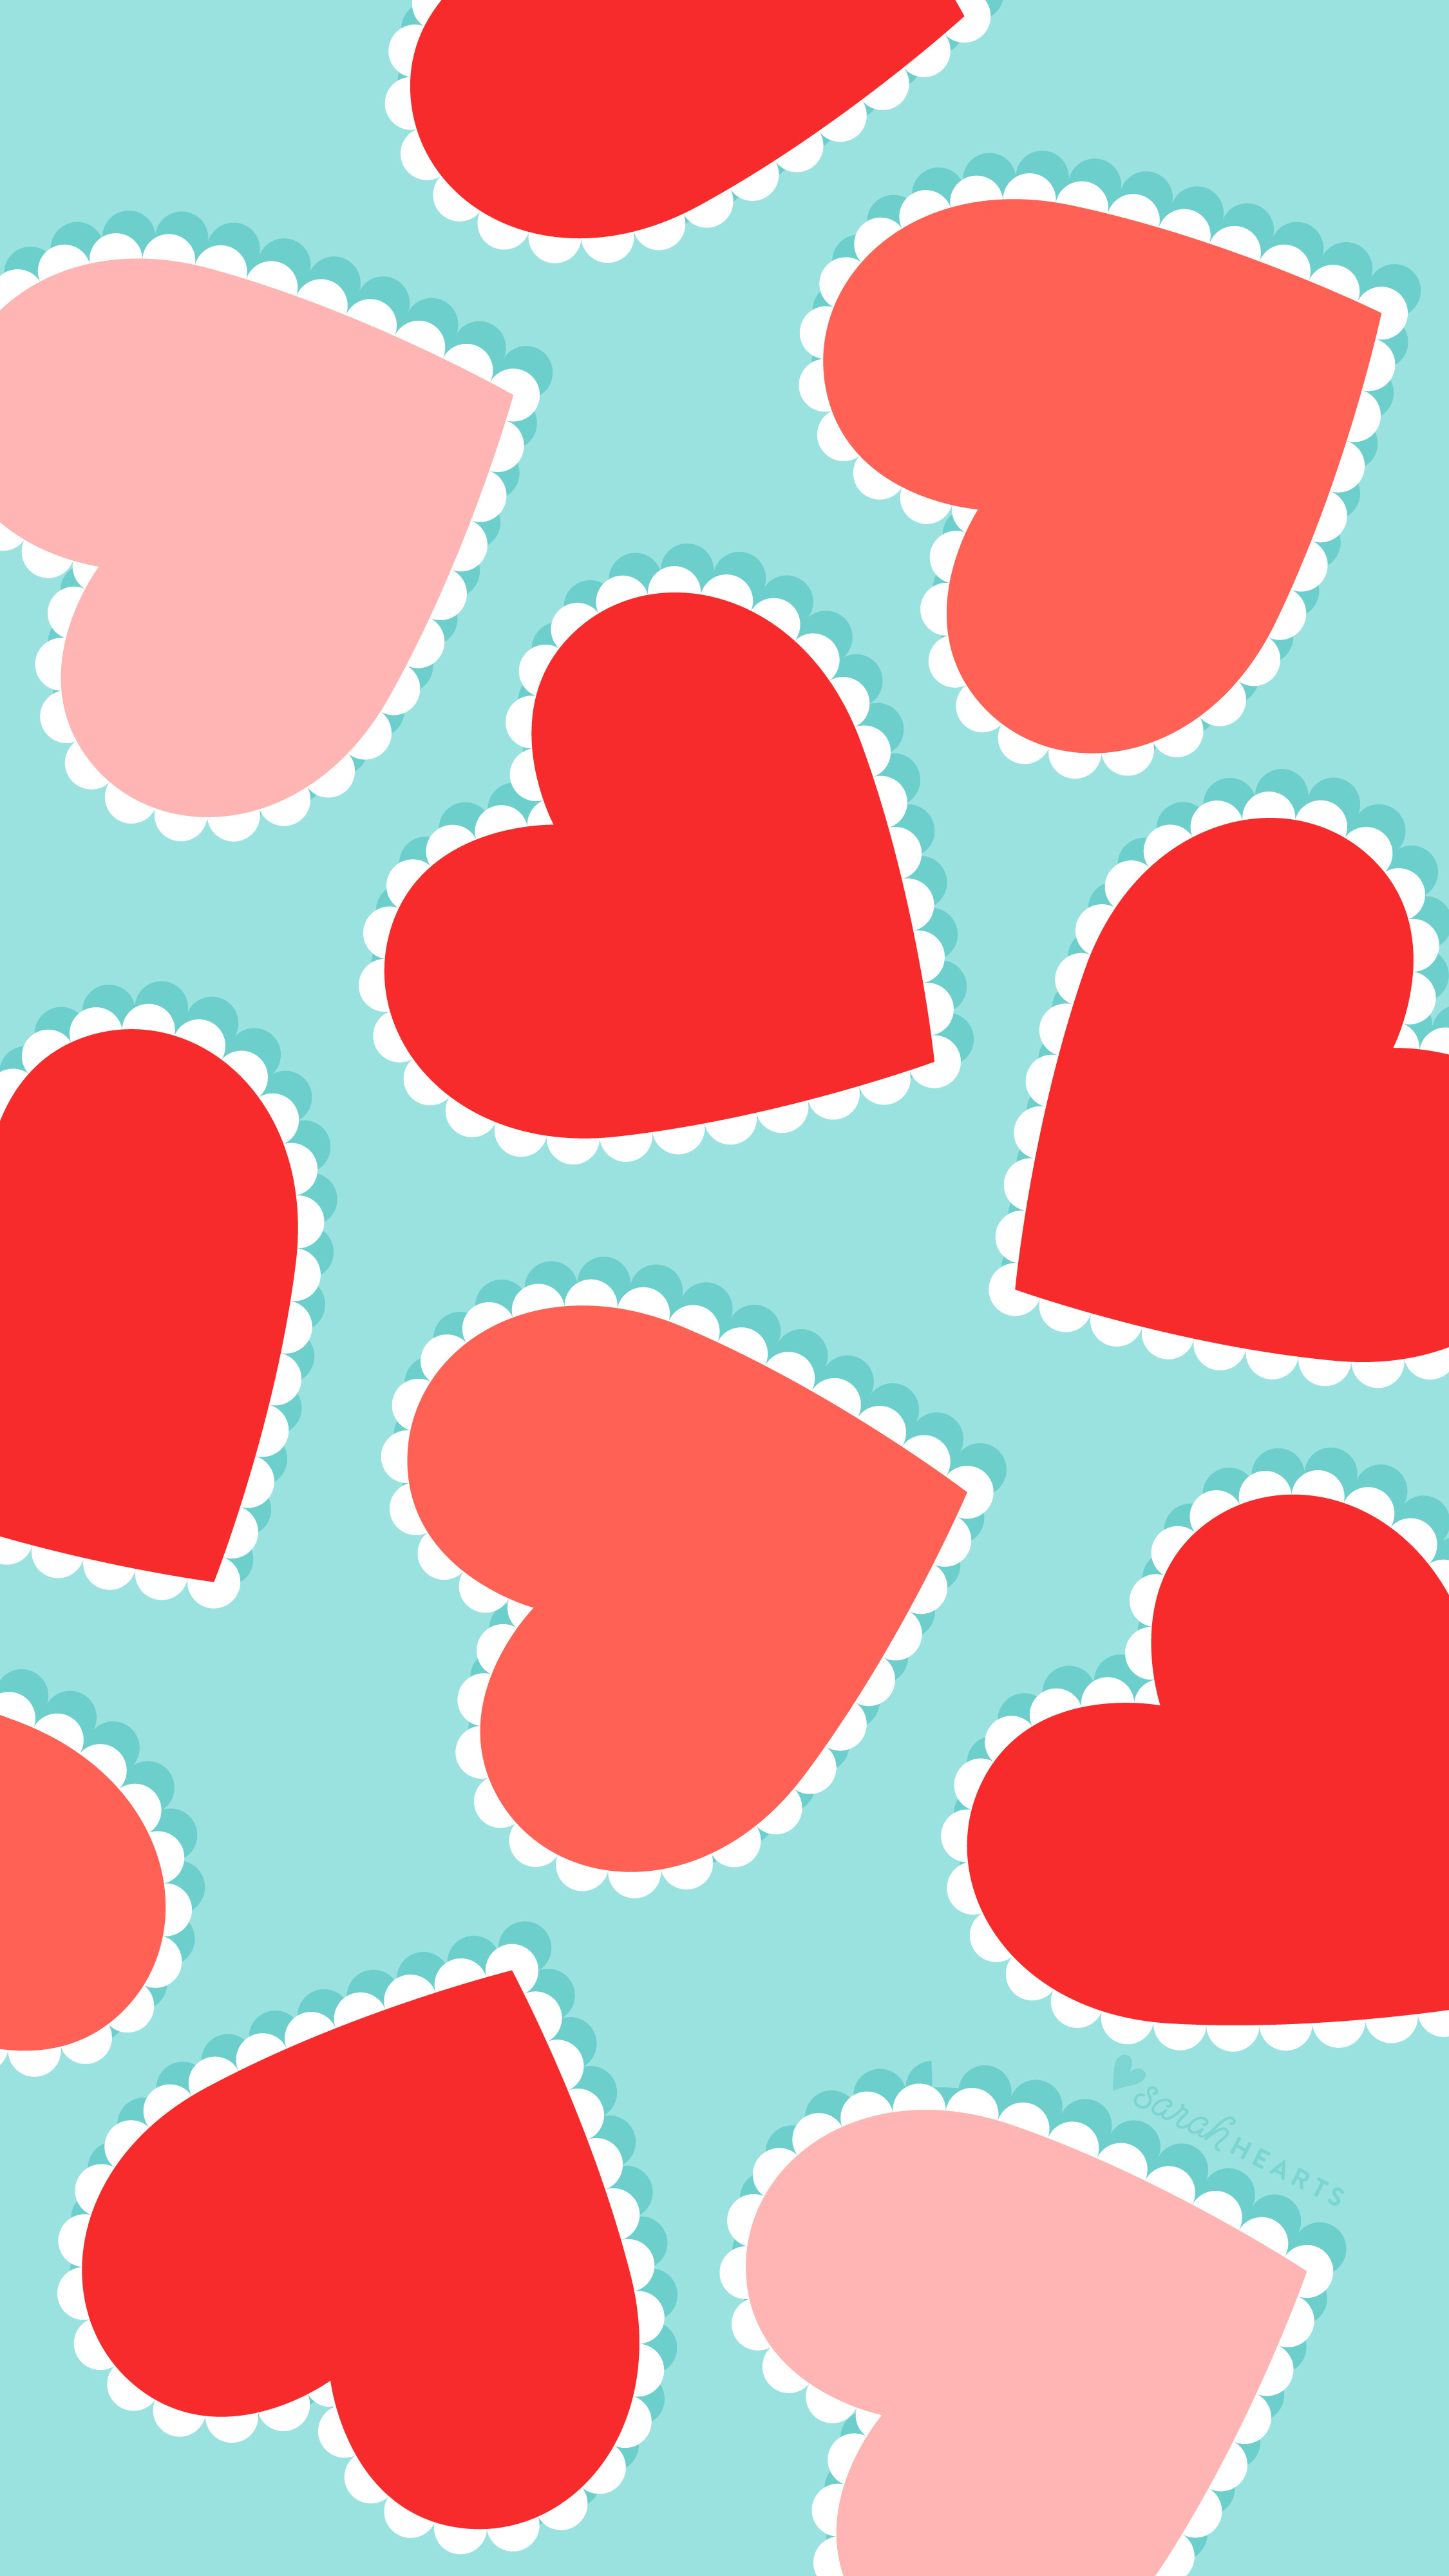 Scalloped red heart iPhone and Android wallpaper with blue background